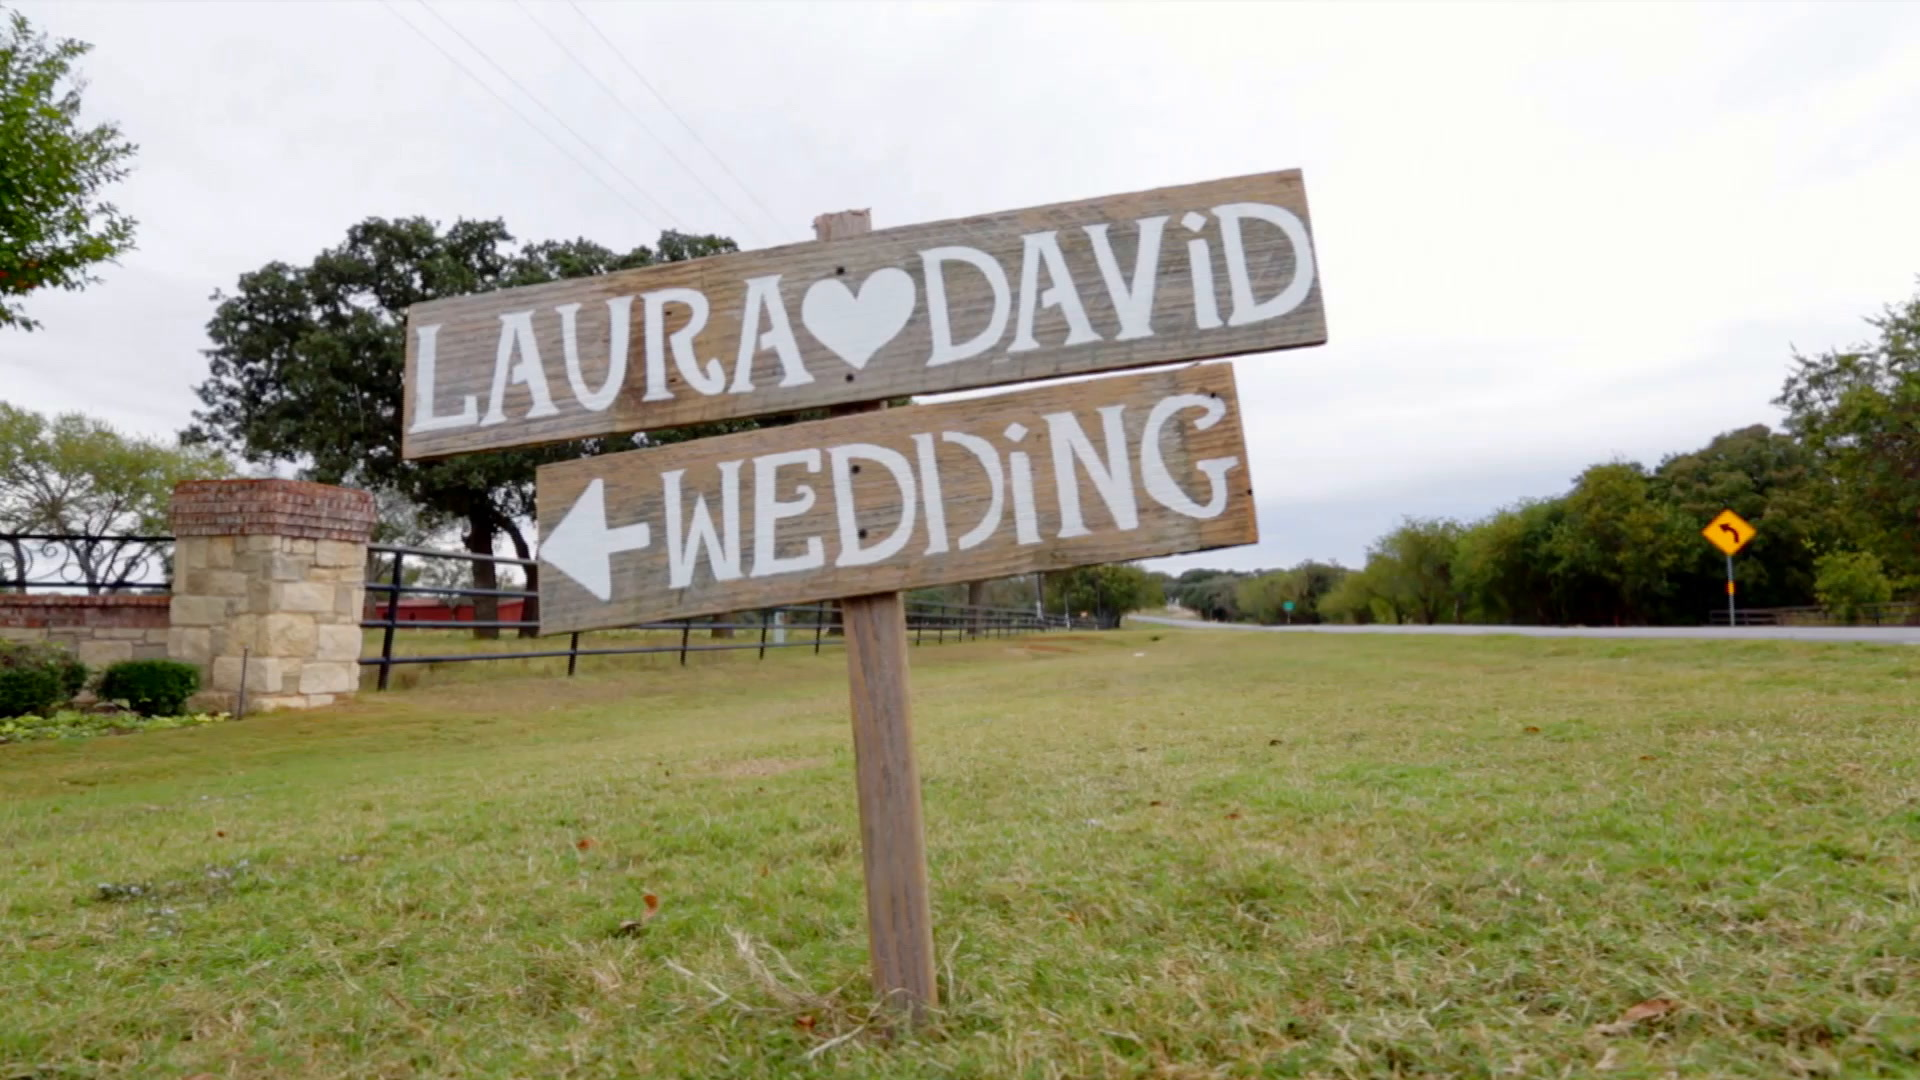 Laura + David | Mansfield, Texas | Classic Oaks Ranch